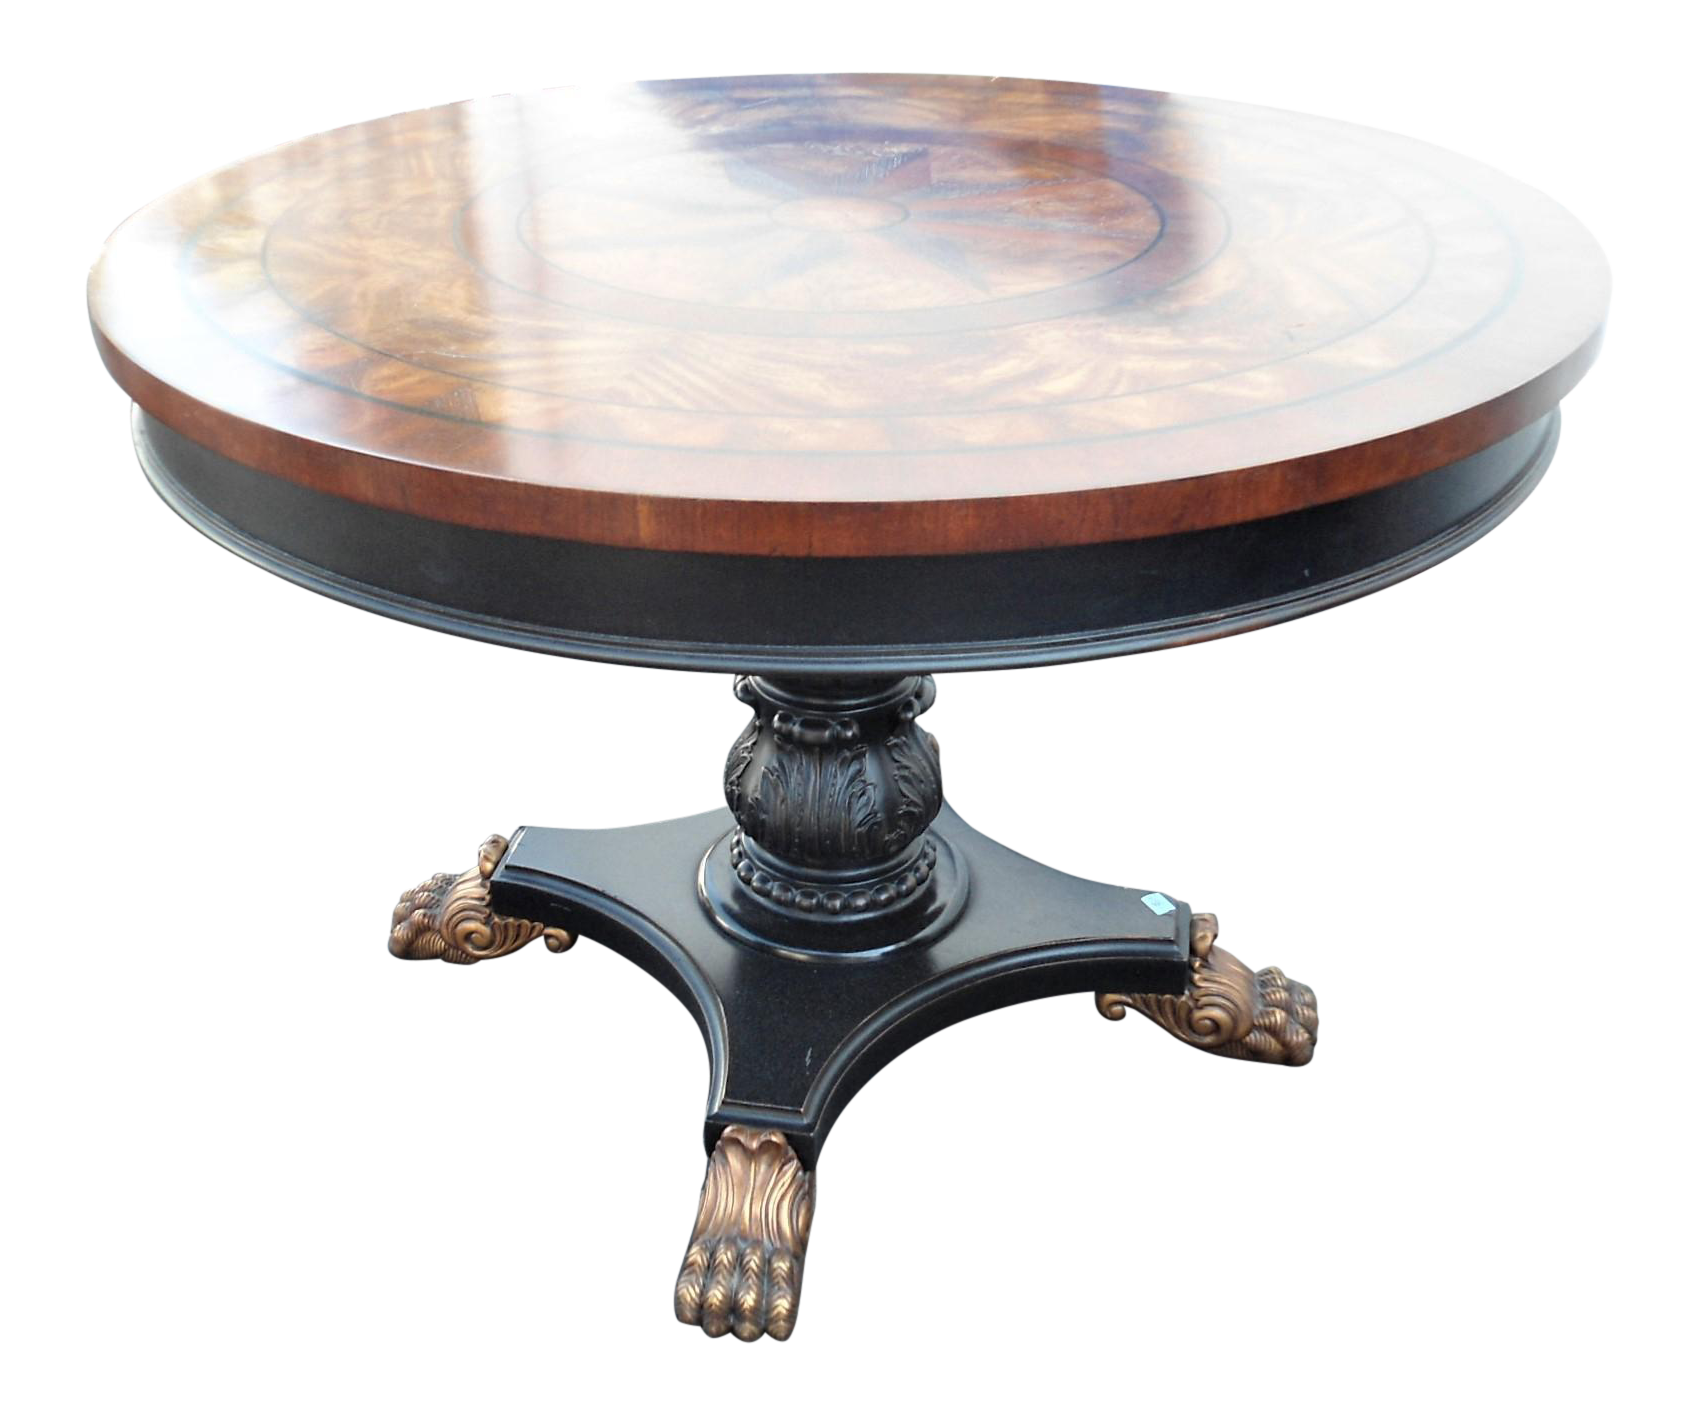 Pedestal drawing circular table. Star inlay round with